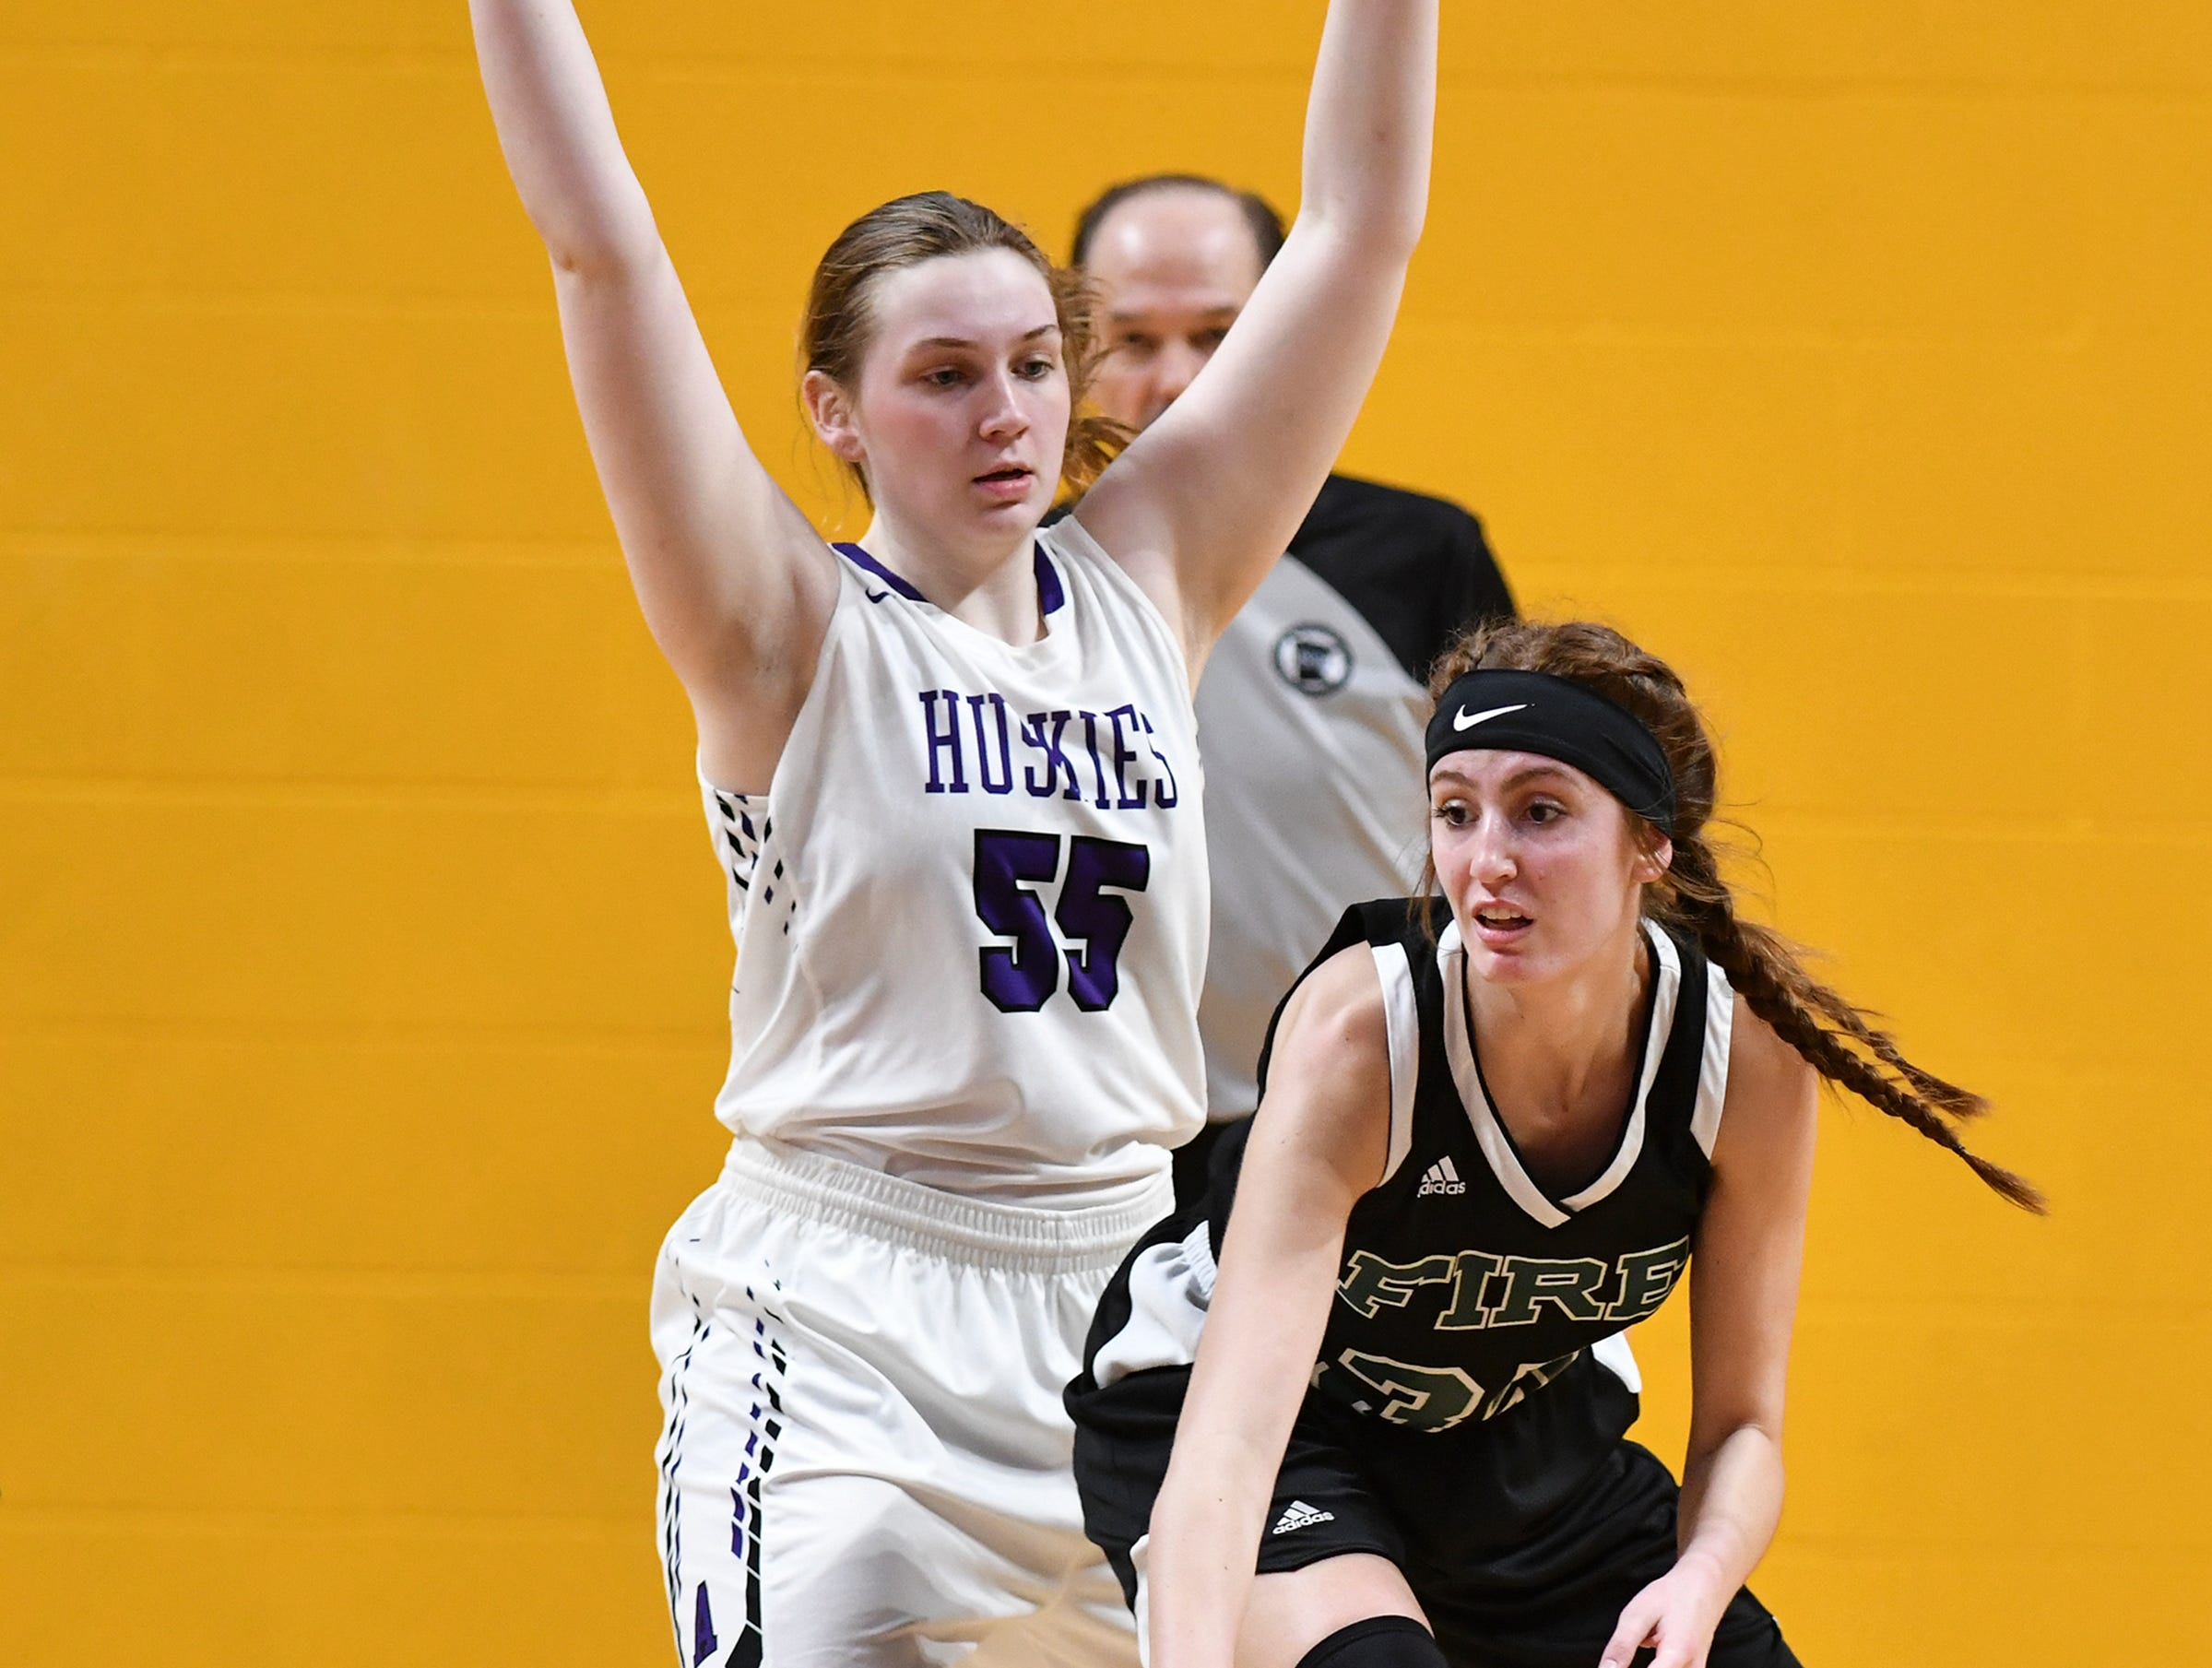 Albany's Madi Herkenhoff plays defense during the state Class 2A quarterfinals game Wednesday, March 13, at the University of Minnesota in Minneapolis.